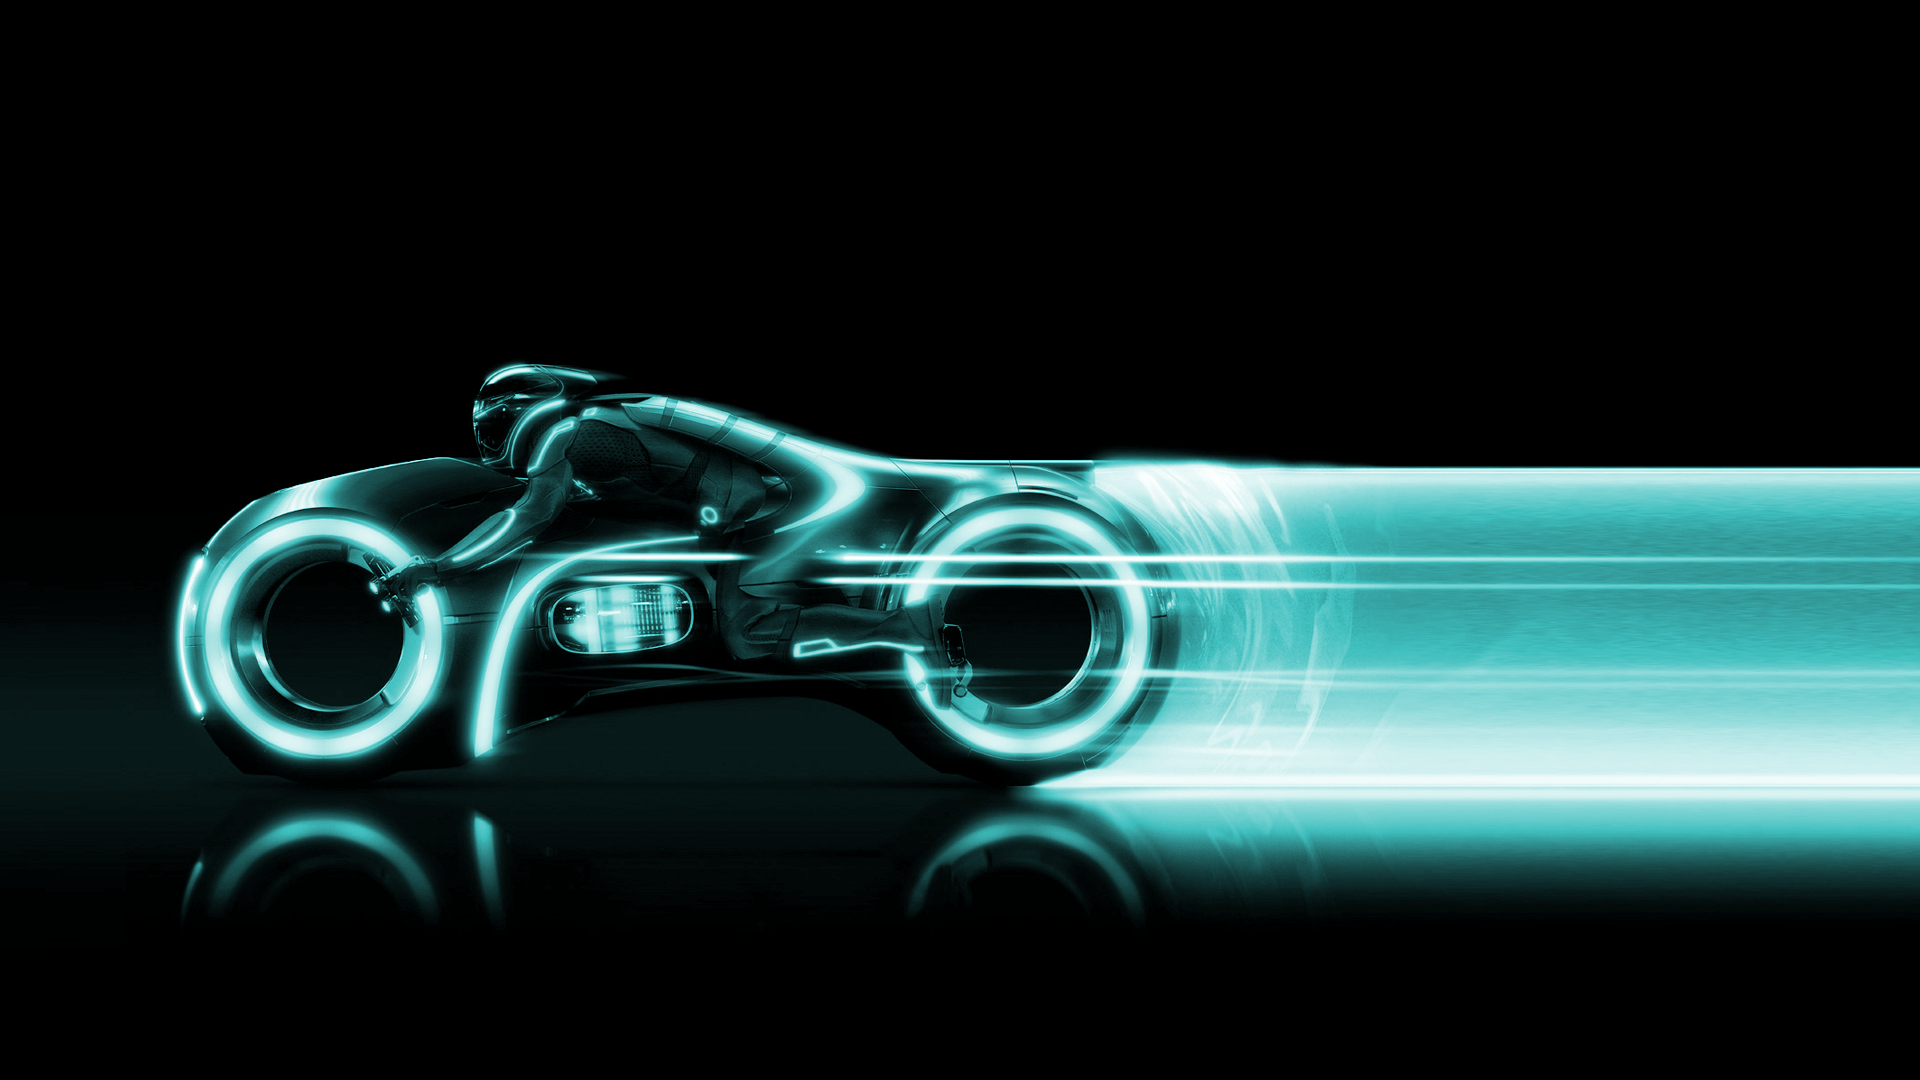 Tron Wallpaper Uprising 5580